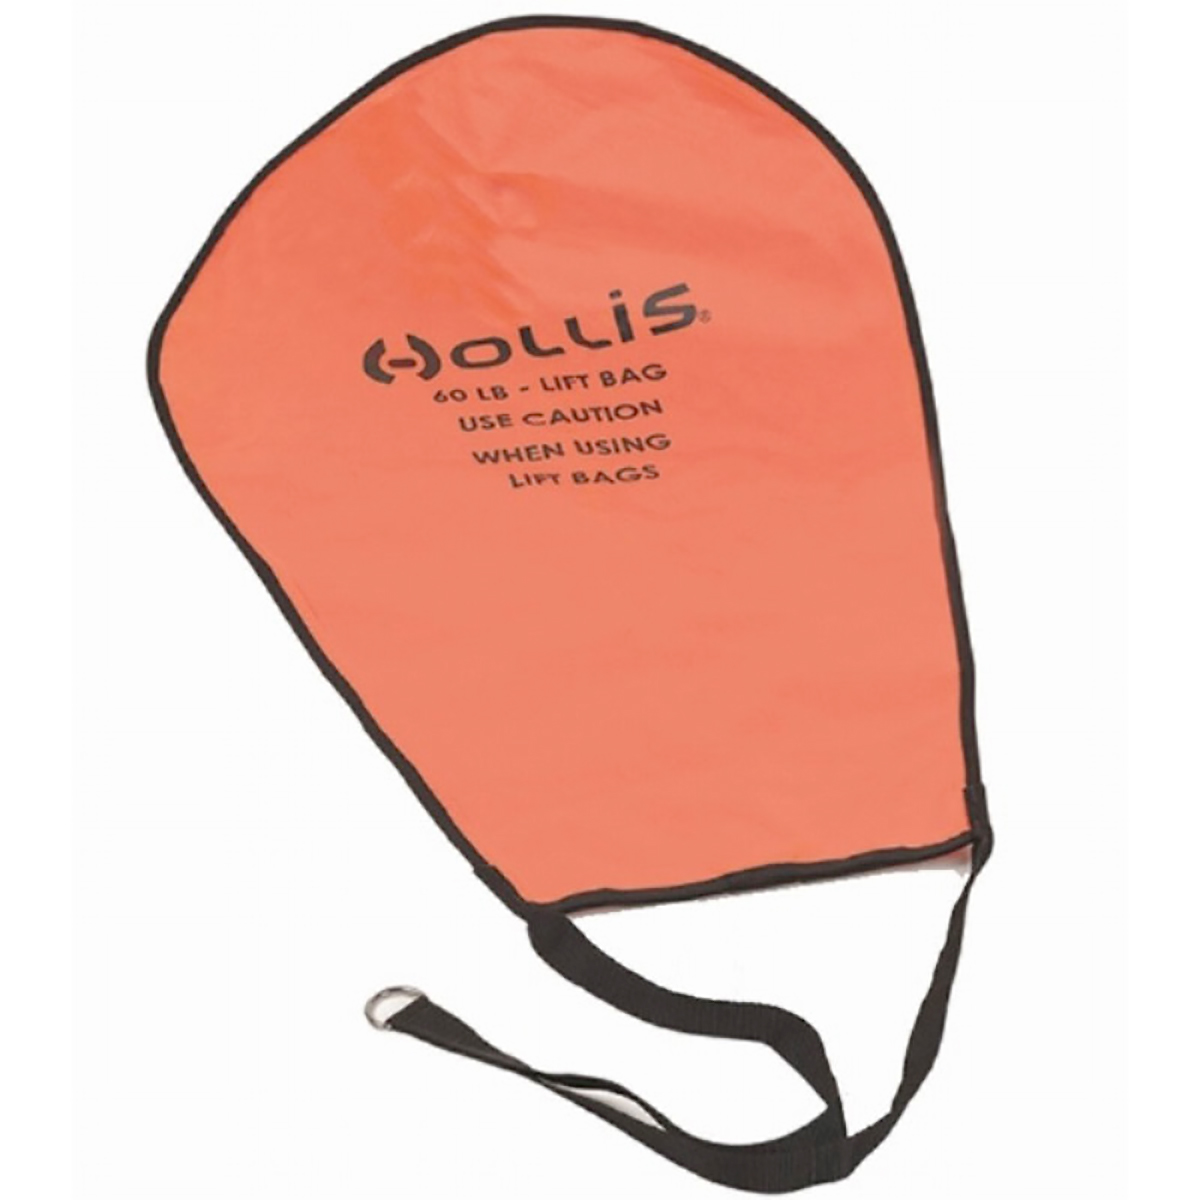 60lb Lift Bag Orange